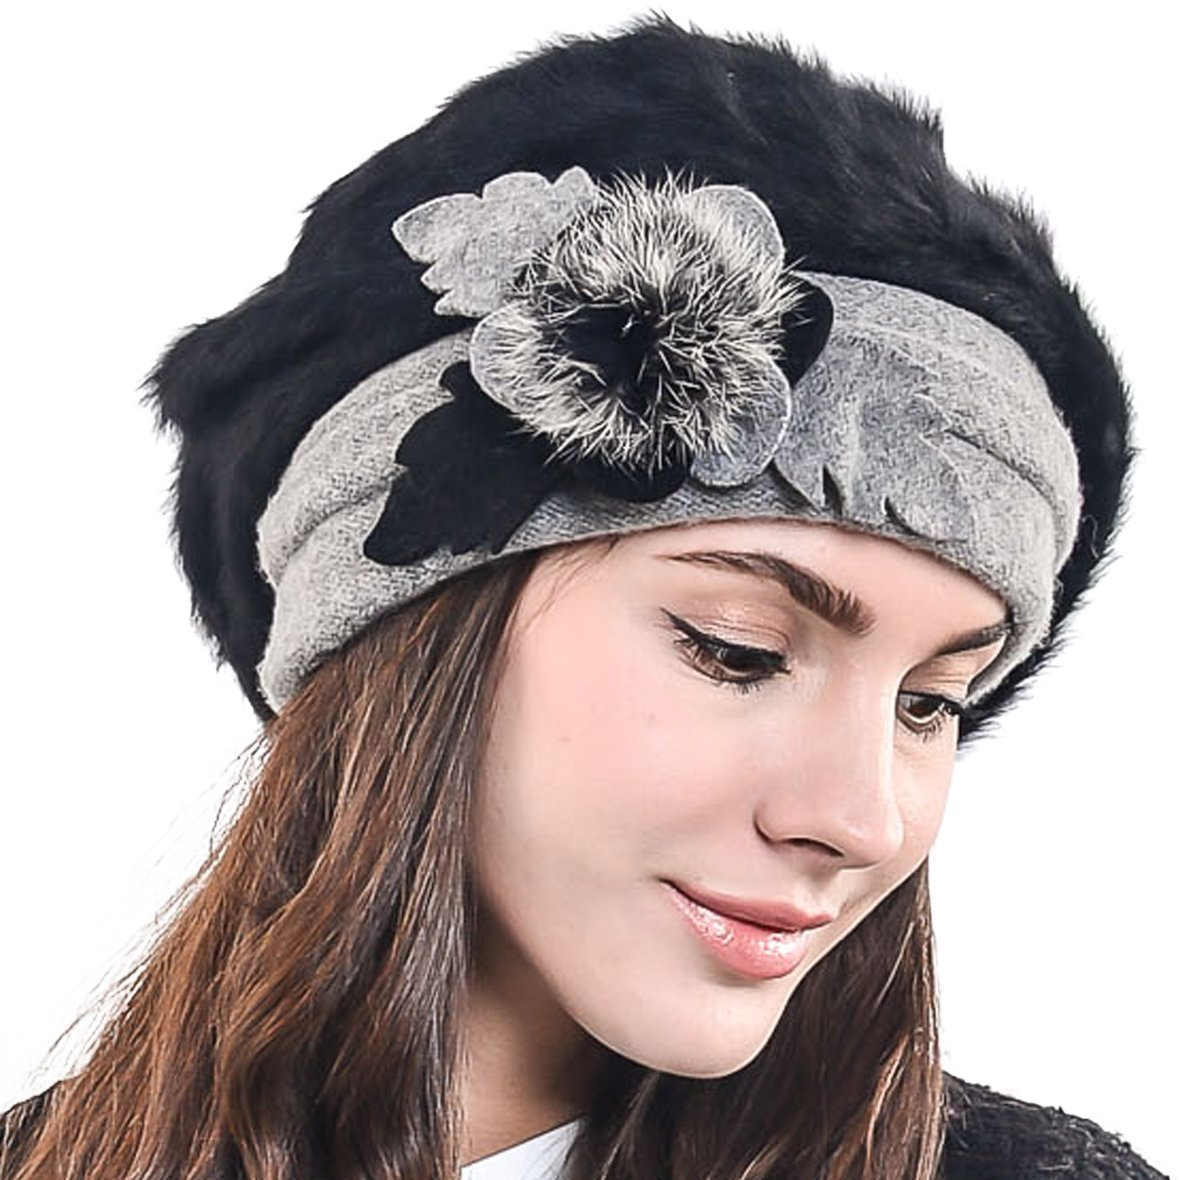 F&N STORY Lady French Beret Wool Beret Chic Beanie Winter Hat Jf-br034 (BR022-Black Angora)